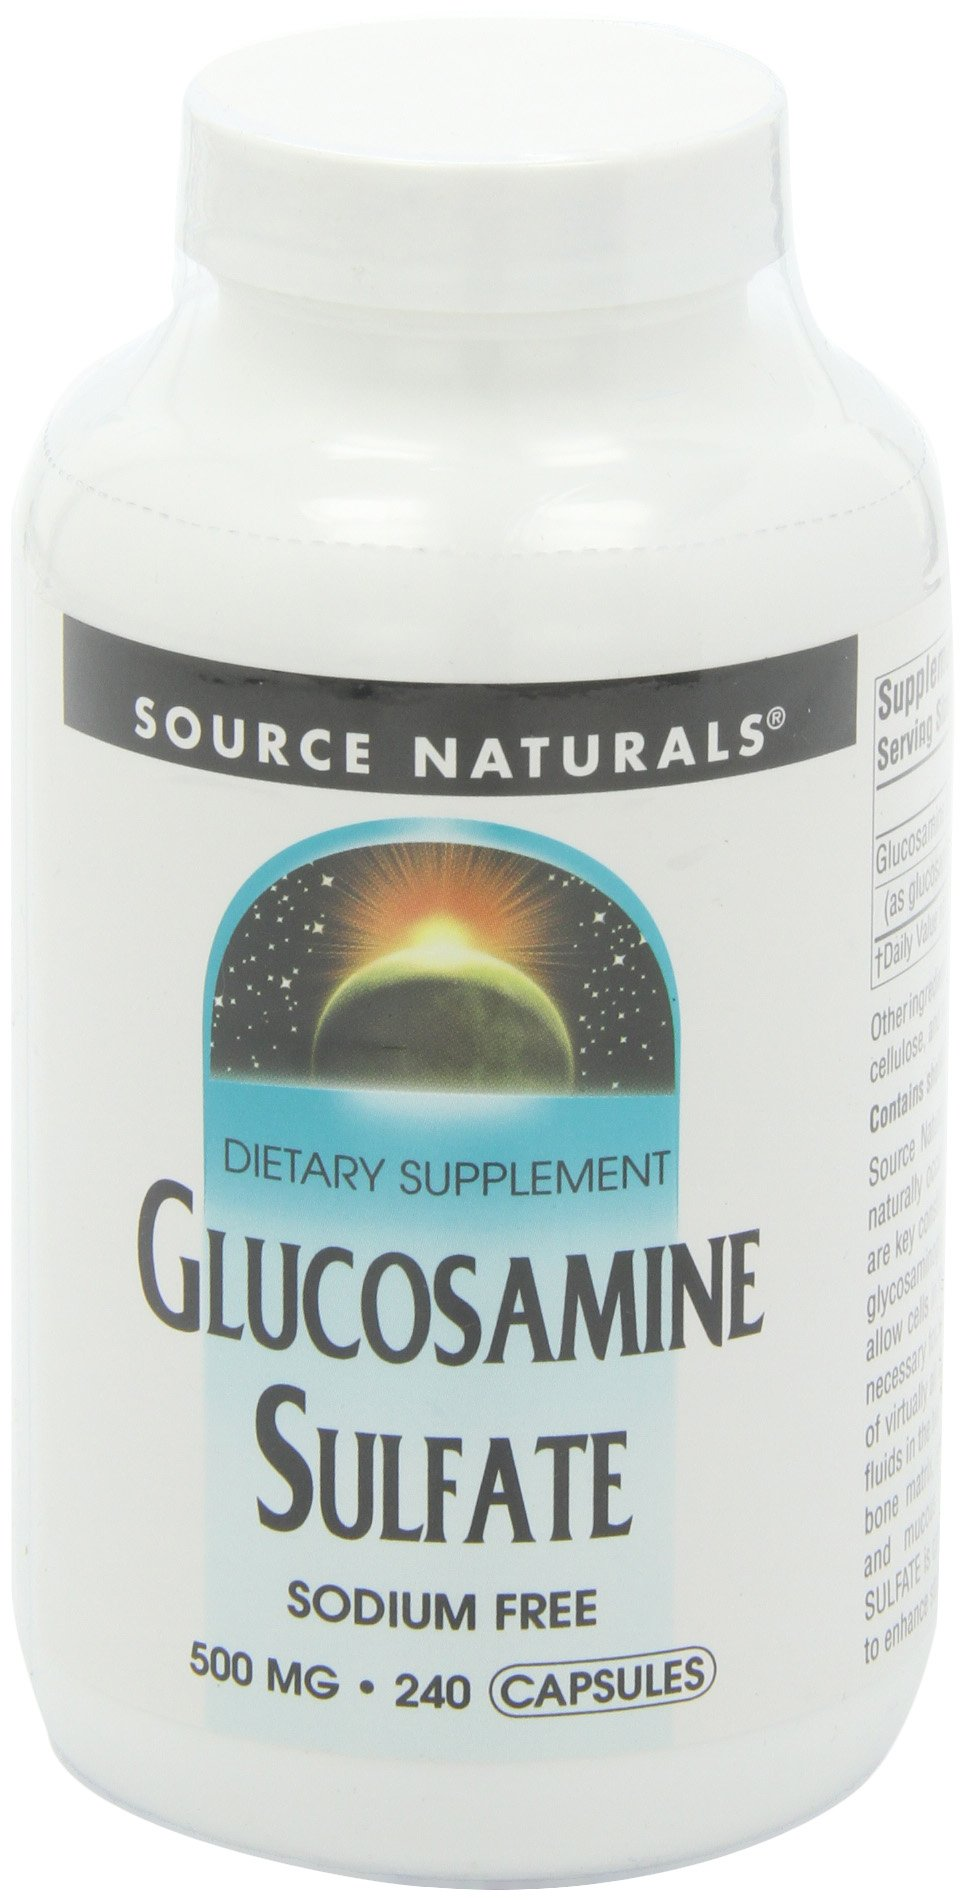 Source Naturals Glucosamine Sulfate 500 Mg, The Nutritional Building Block of Healthy Cartilage, 240 Capsules